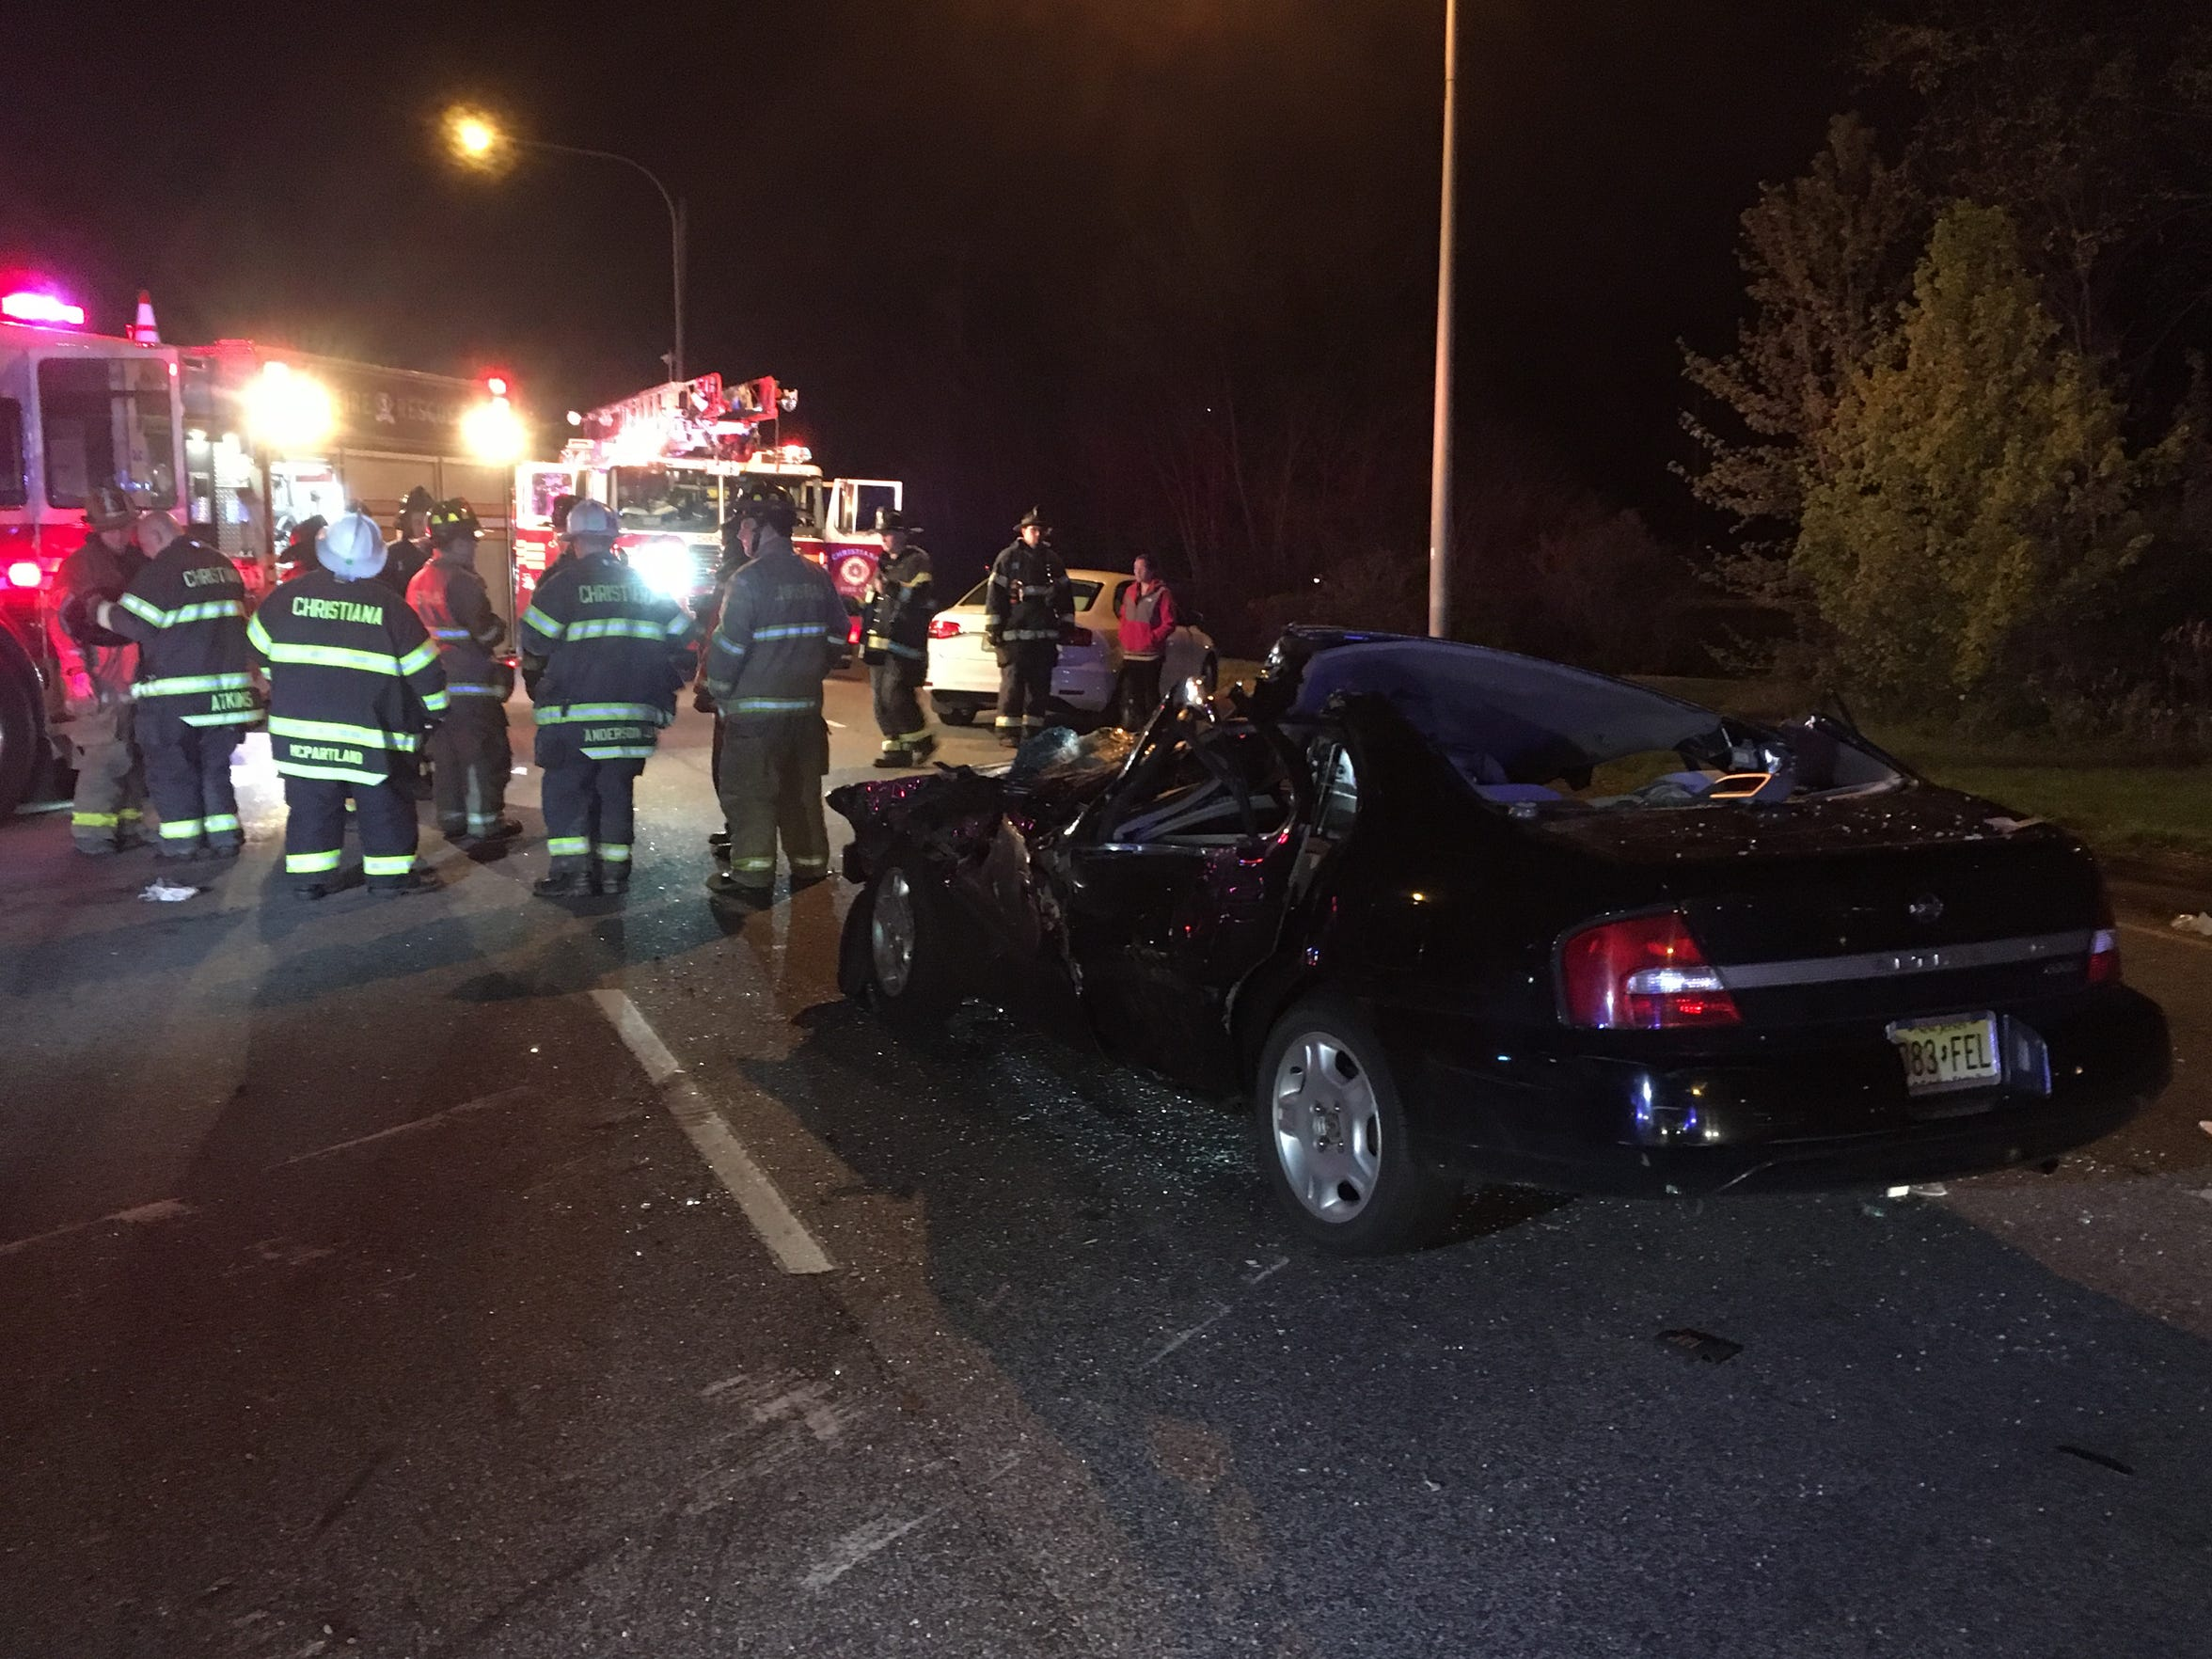 Two people were injured in a head-on collision on Del. 273 in Christiana on Monday night.